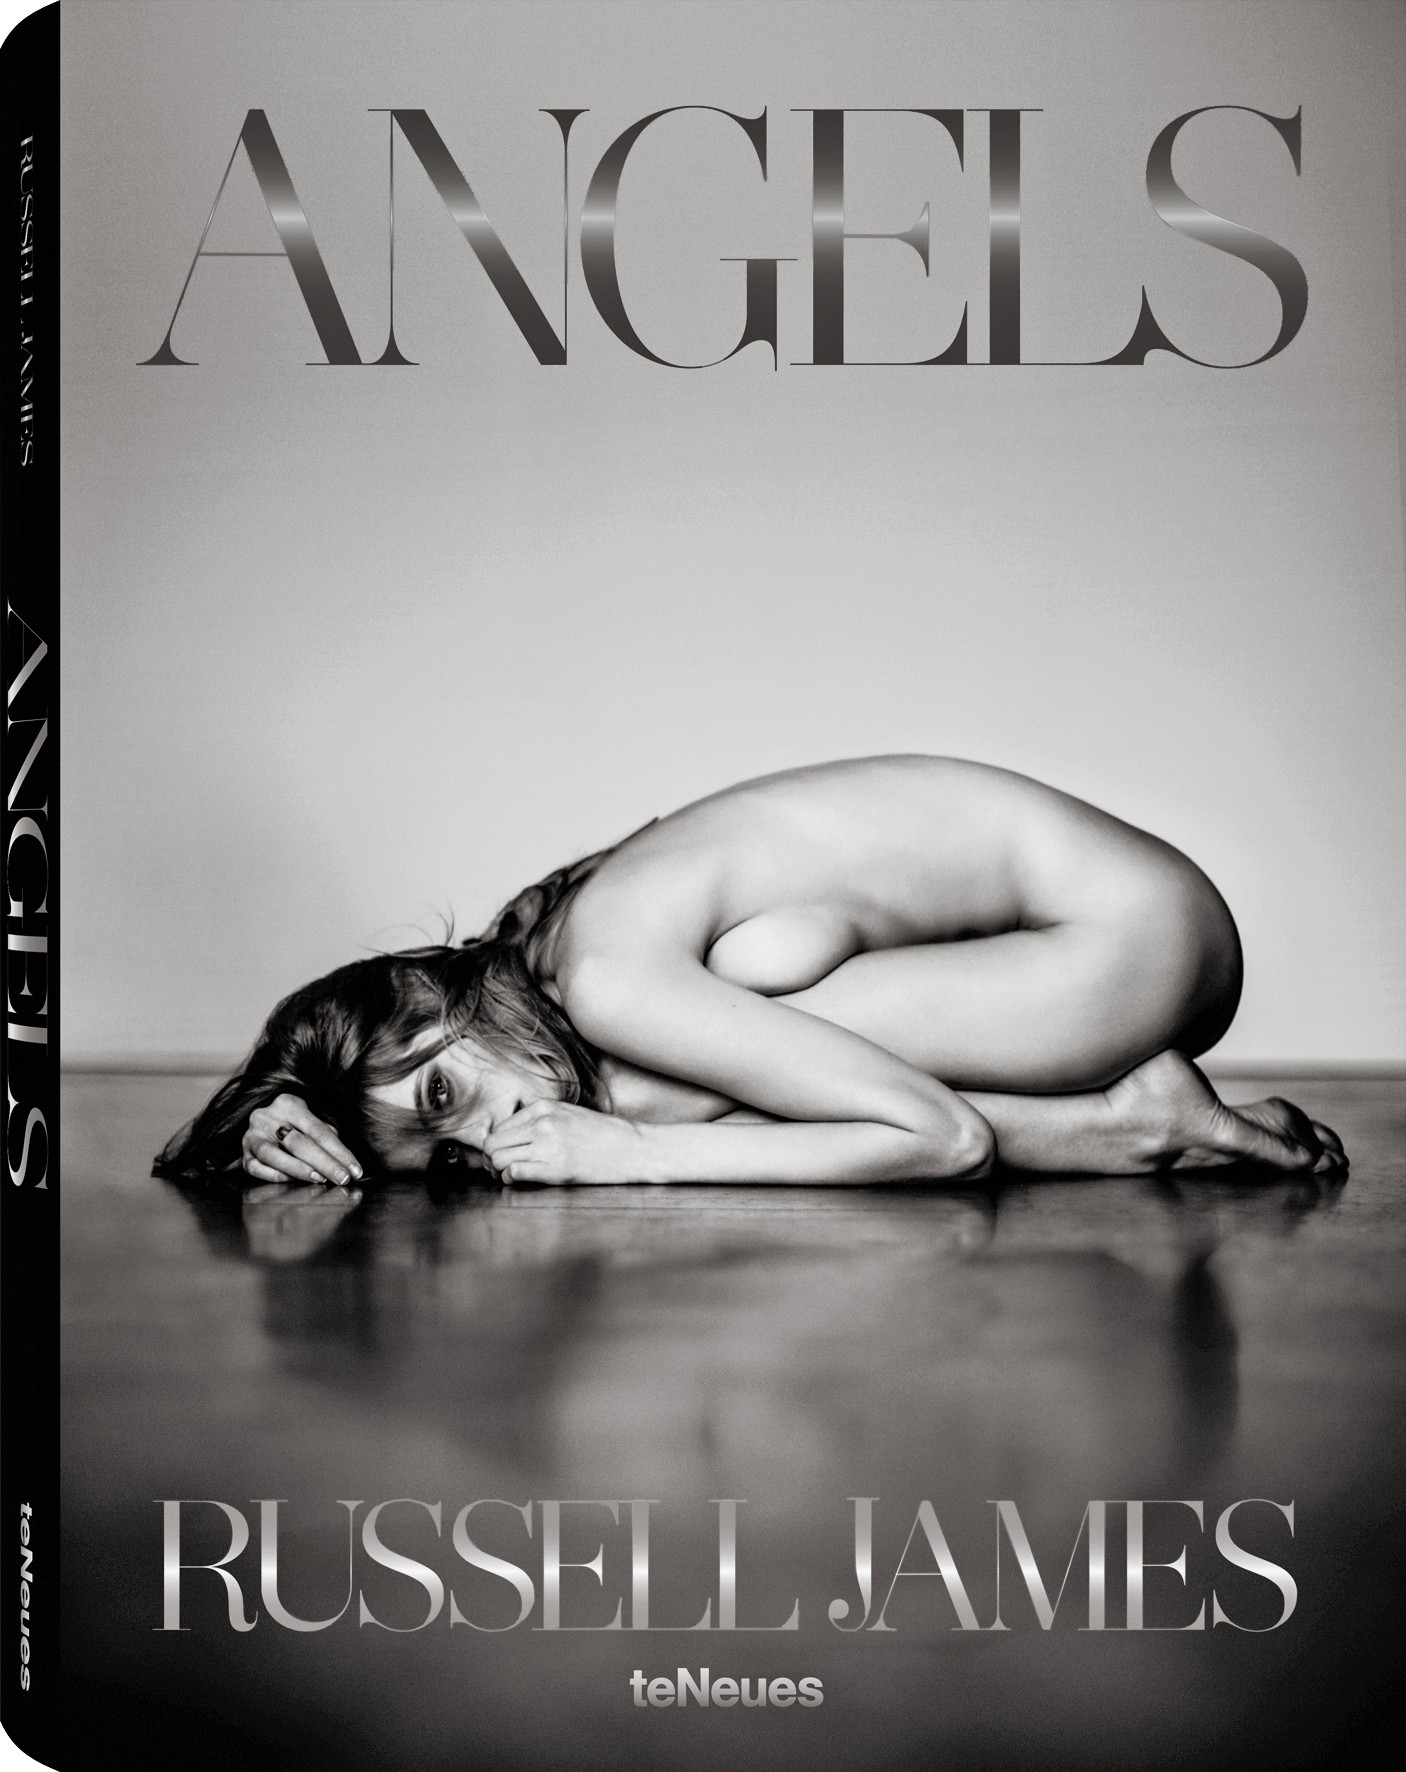 © Angels by Russell James, to be published by teNeues in September 2014, € 148,  www.teneues.com  .  Abbey Lee, New York City, 2010,  Photo © 2014 Russell James. All rights reserved.